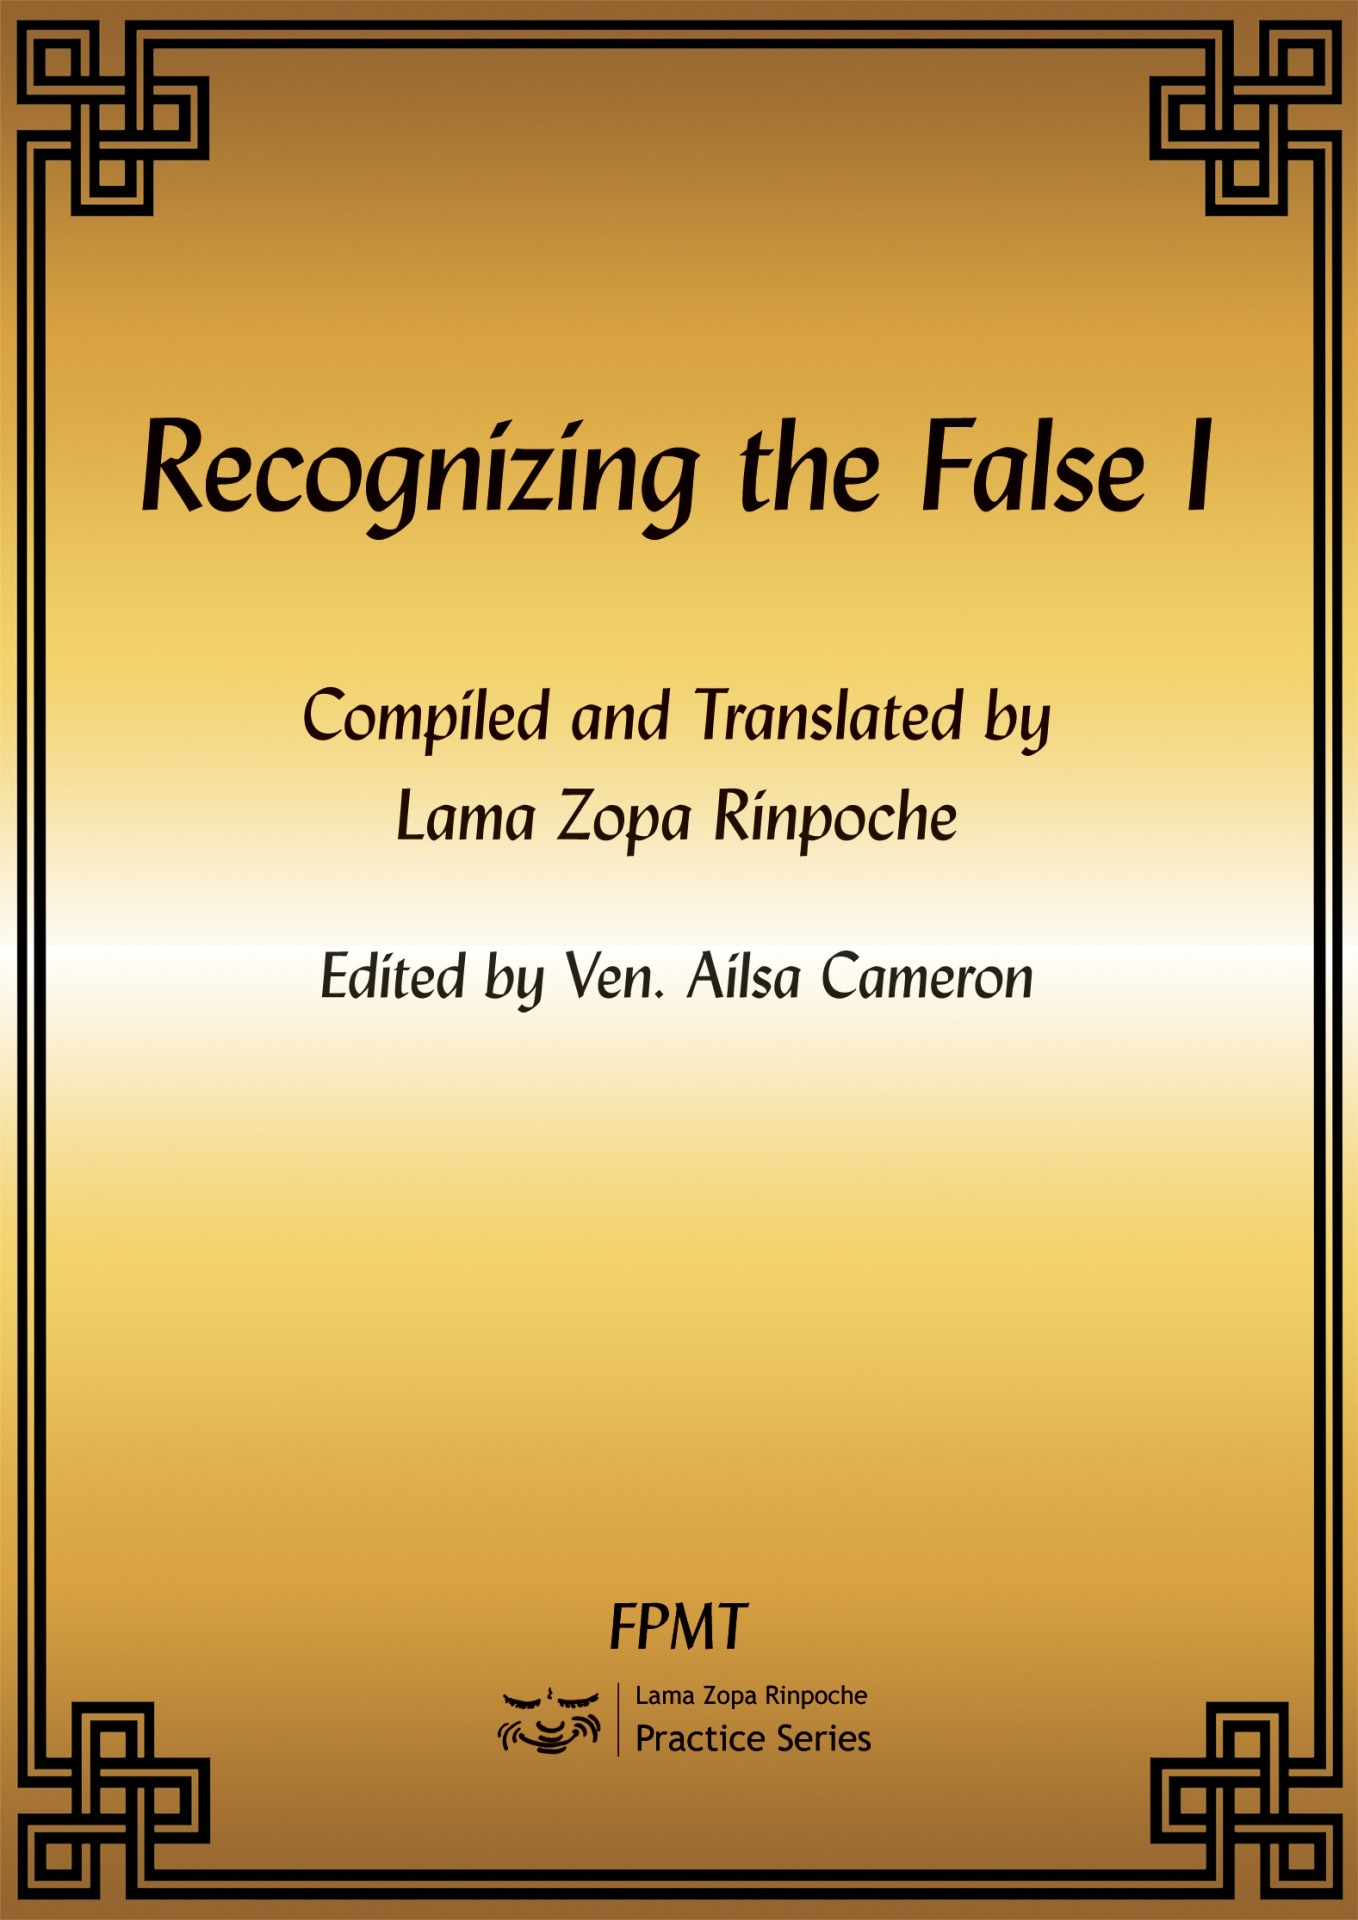 New! 'Recognizing the False I' by Lama Zopa Rinpoche